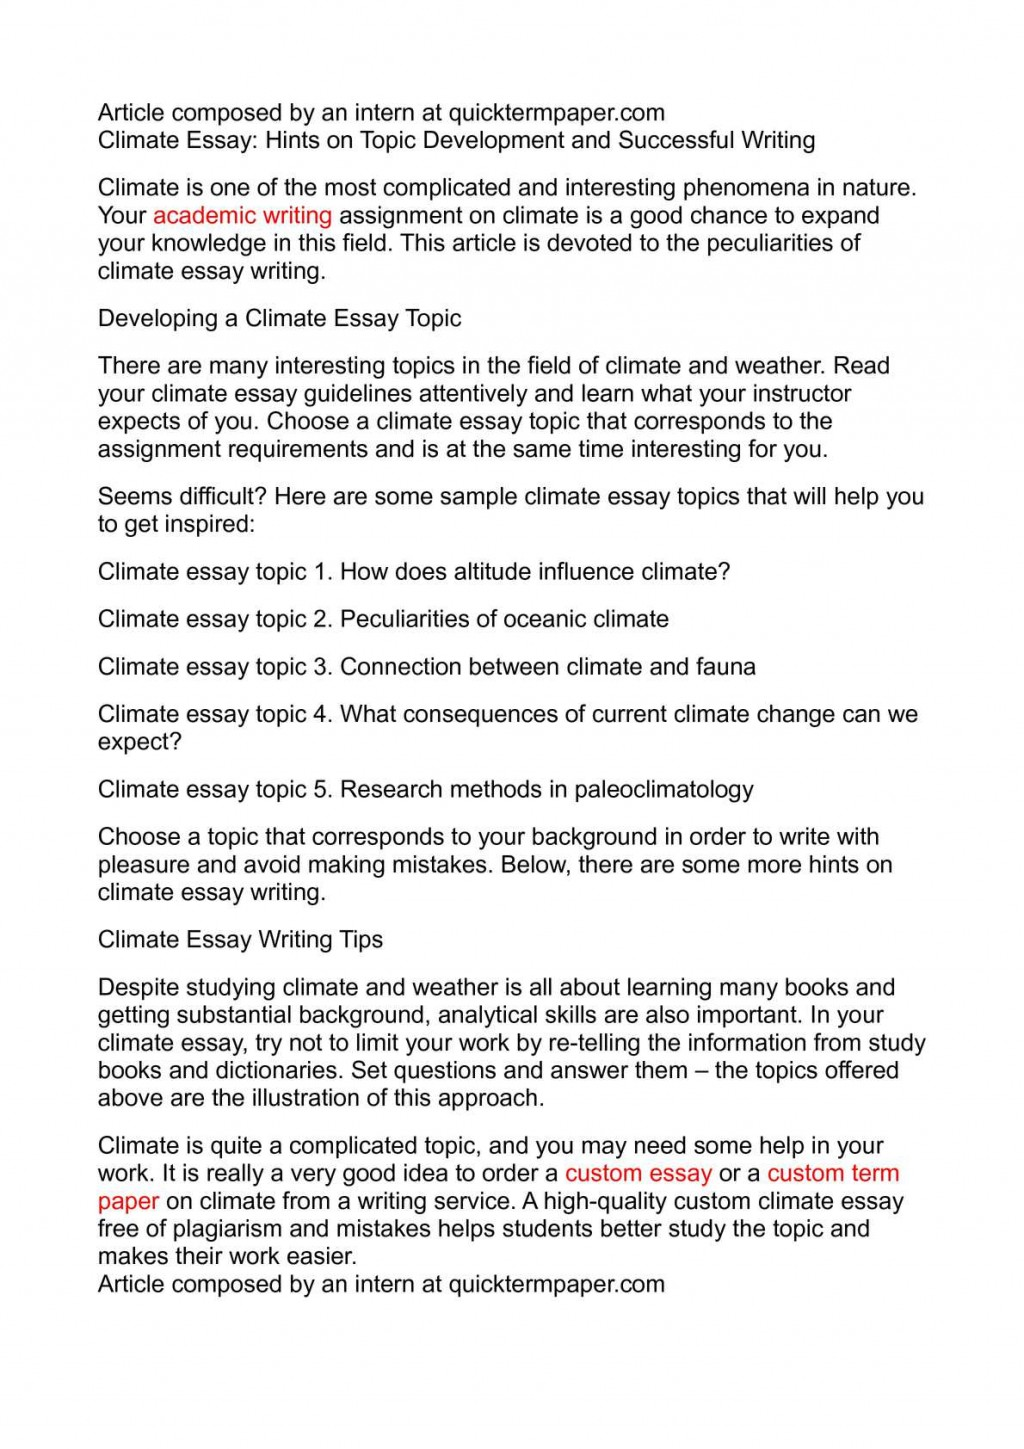 009 Climate Change Research Paper Topic Wonderful Topics For Large